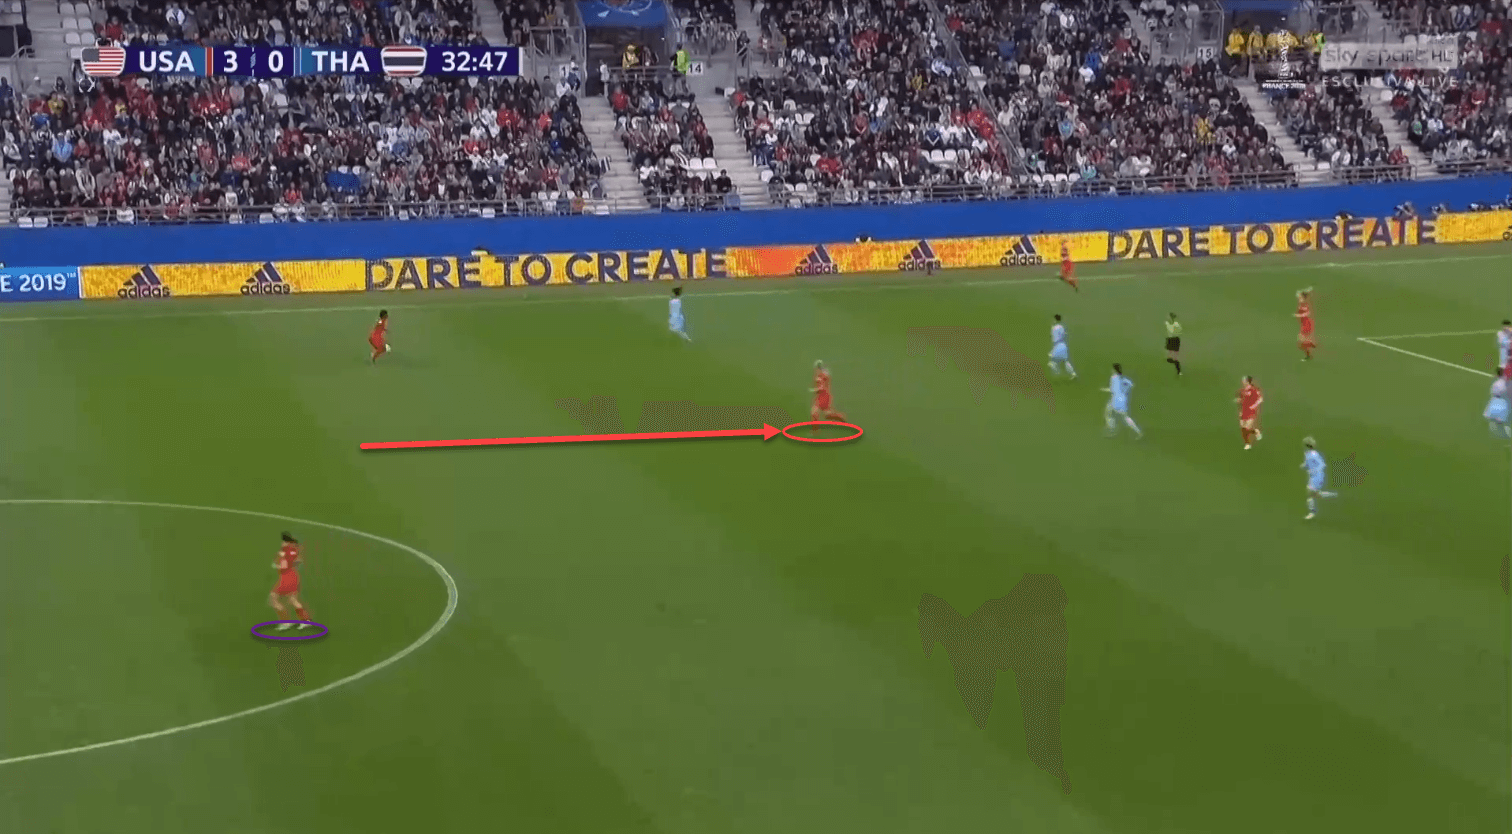 FIFA Women's World Cup 2019 Tactical Analysis: United States vs Thailand Statistics